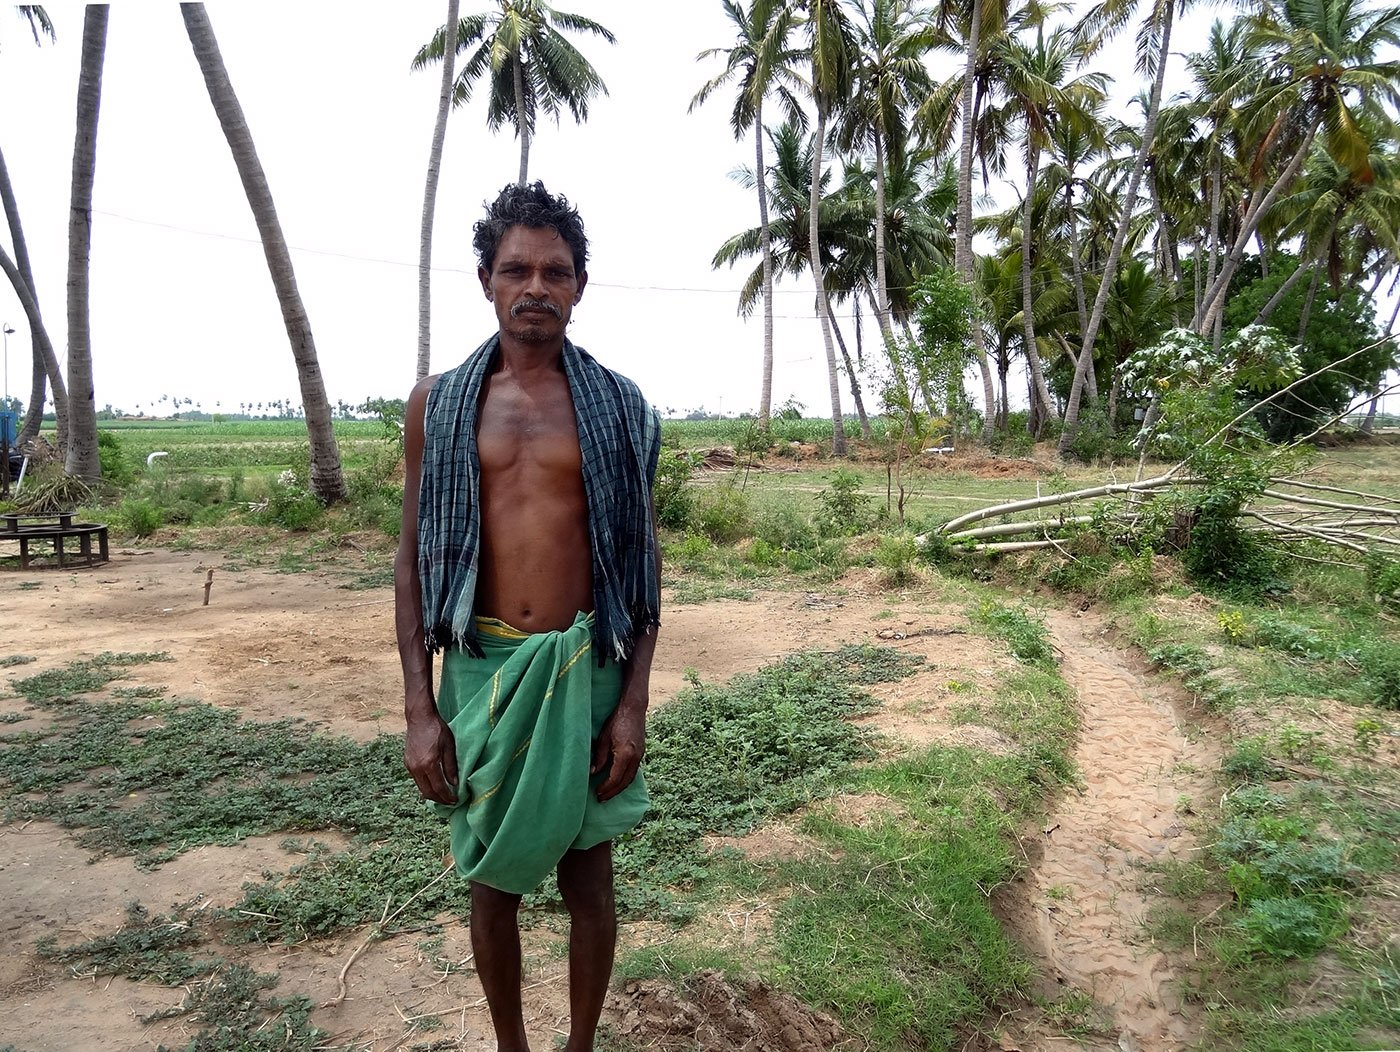 K Lekan, fondly known in his village as Settu, stands against the backdrop of wilting farms in his village Thayanur, 25 km from Trichy town, lucky to have survived a suicide bid earlier this year amidst a raging drought.